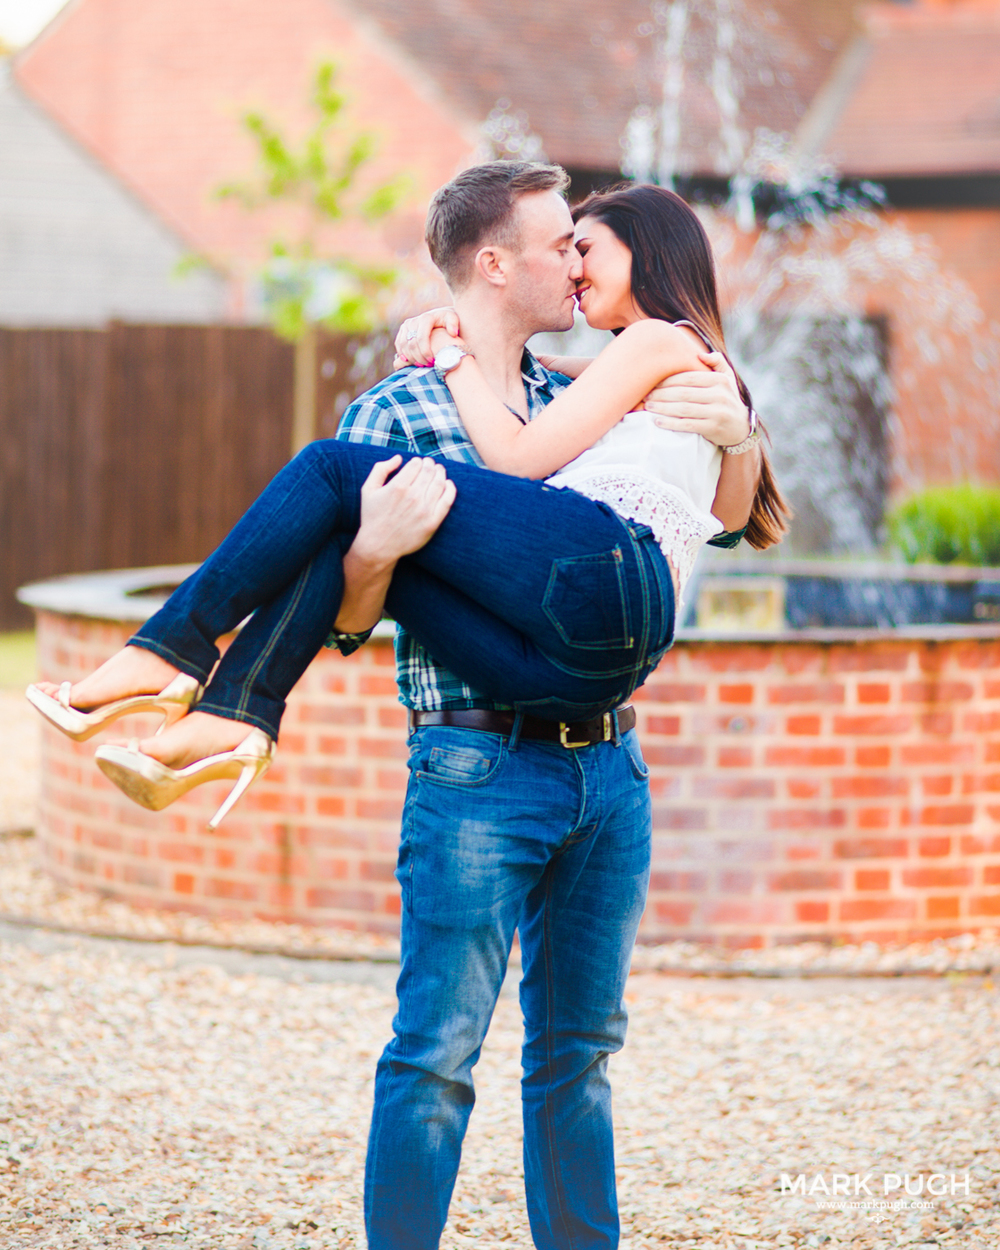 107  - Jacqueline and David - preWED Photography session at Kelham House Country Manor Hotel by Mark Pugh www.markpugh.com -0284.JPG